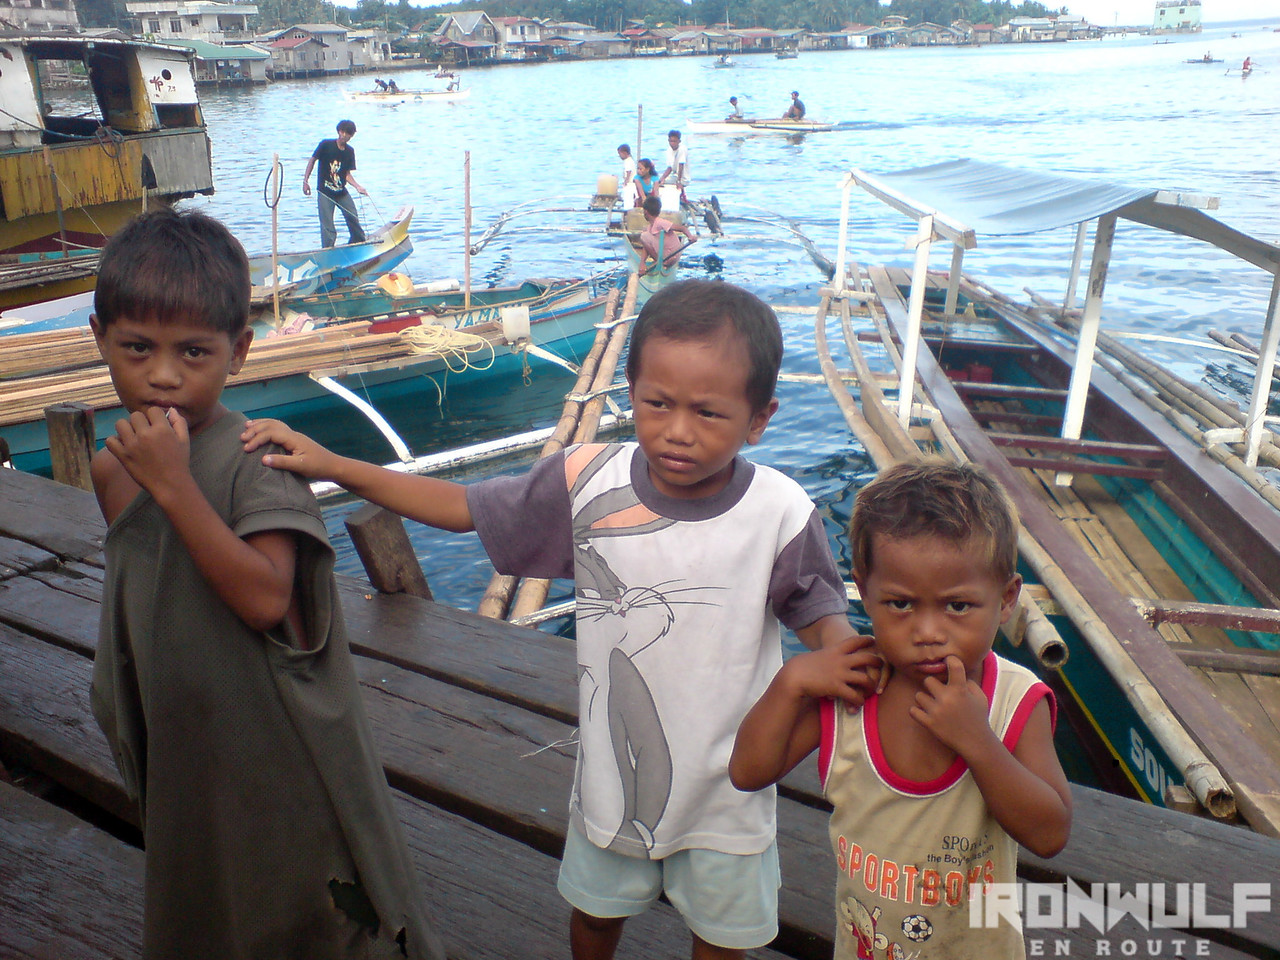 Child beggars at the port